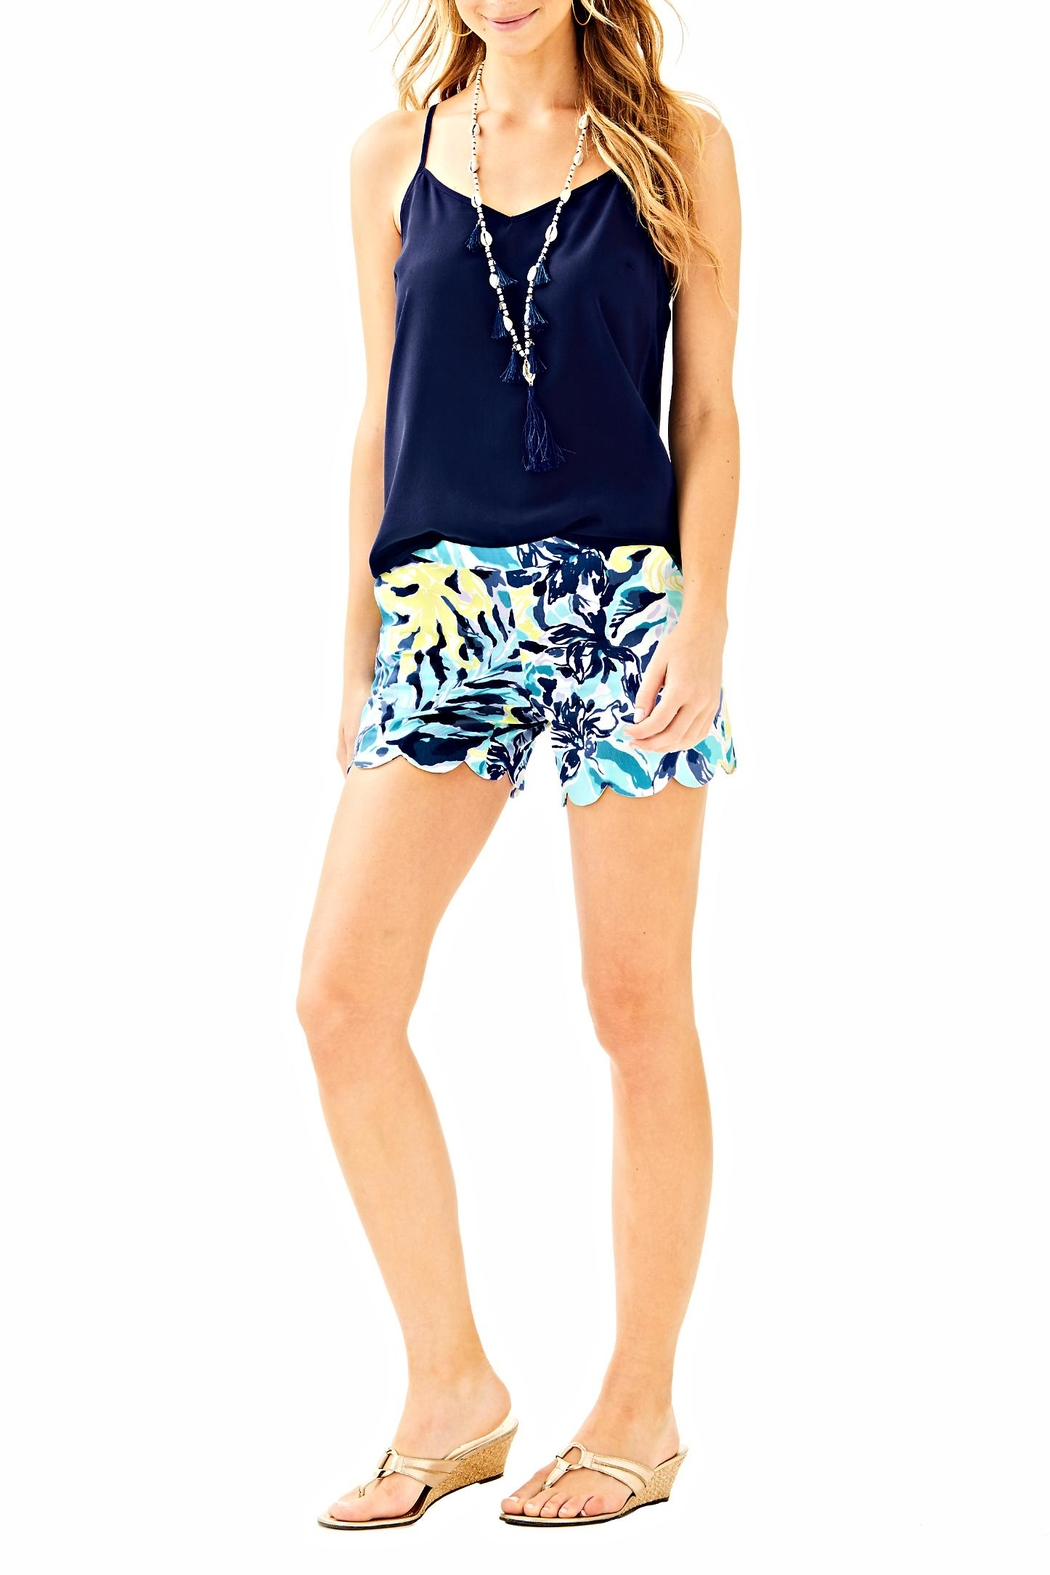 Lilly Pulitzer Magnolia Scallop Short - Side Cropped Image